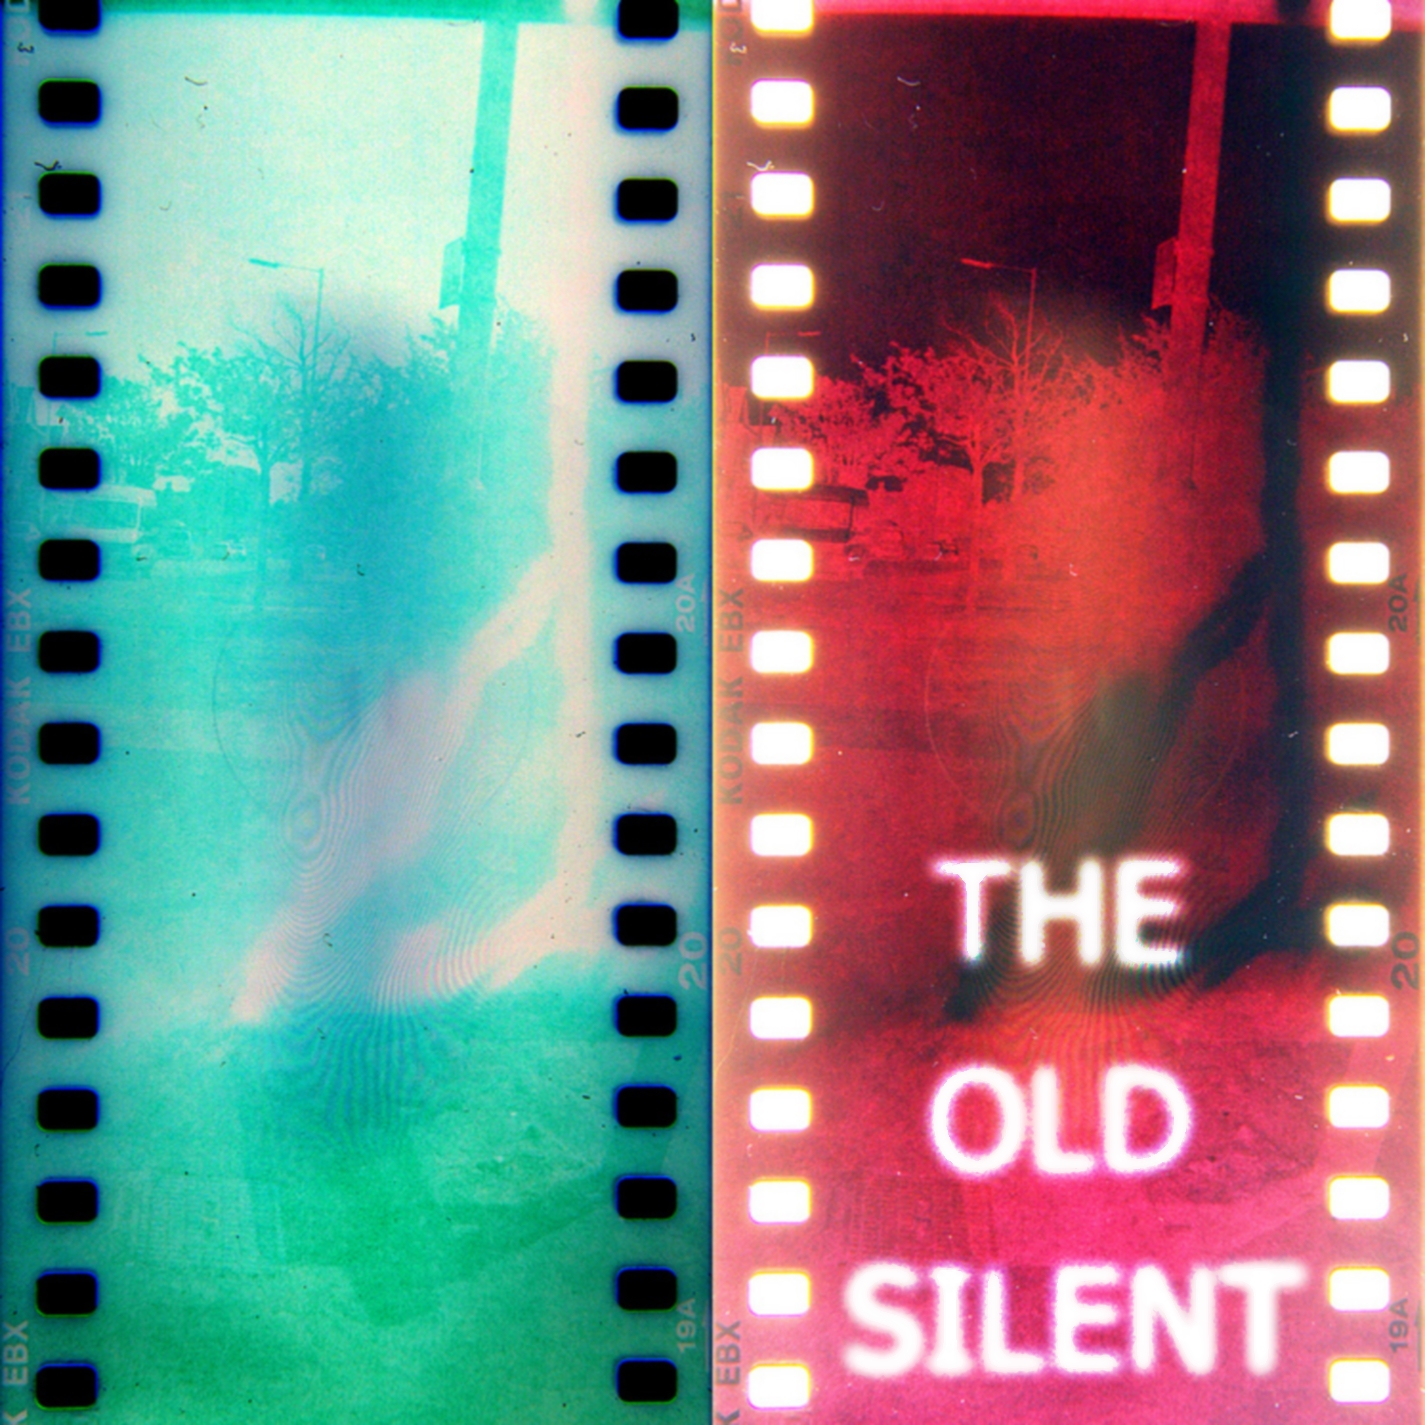 The Old Silent Stream Ever You & Announce Apologies